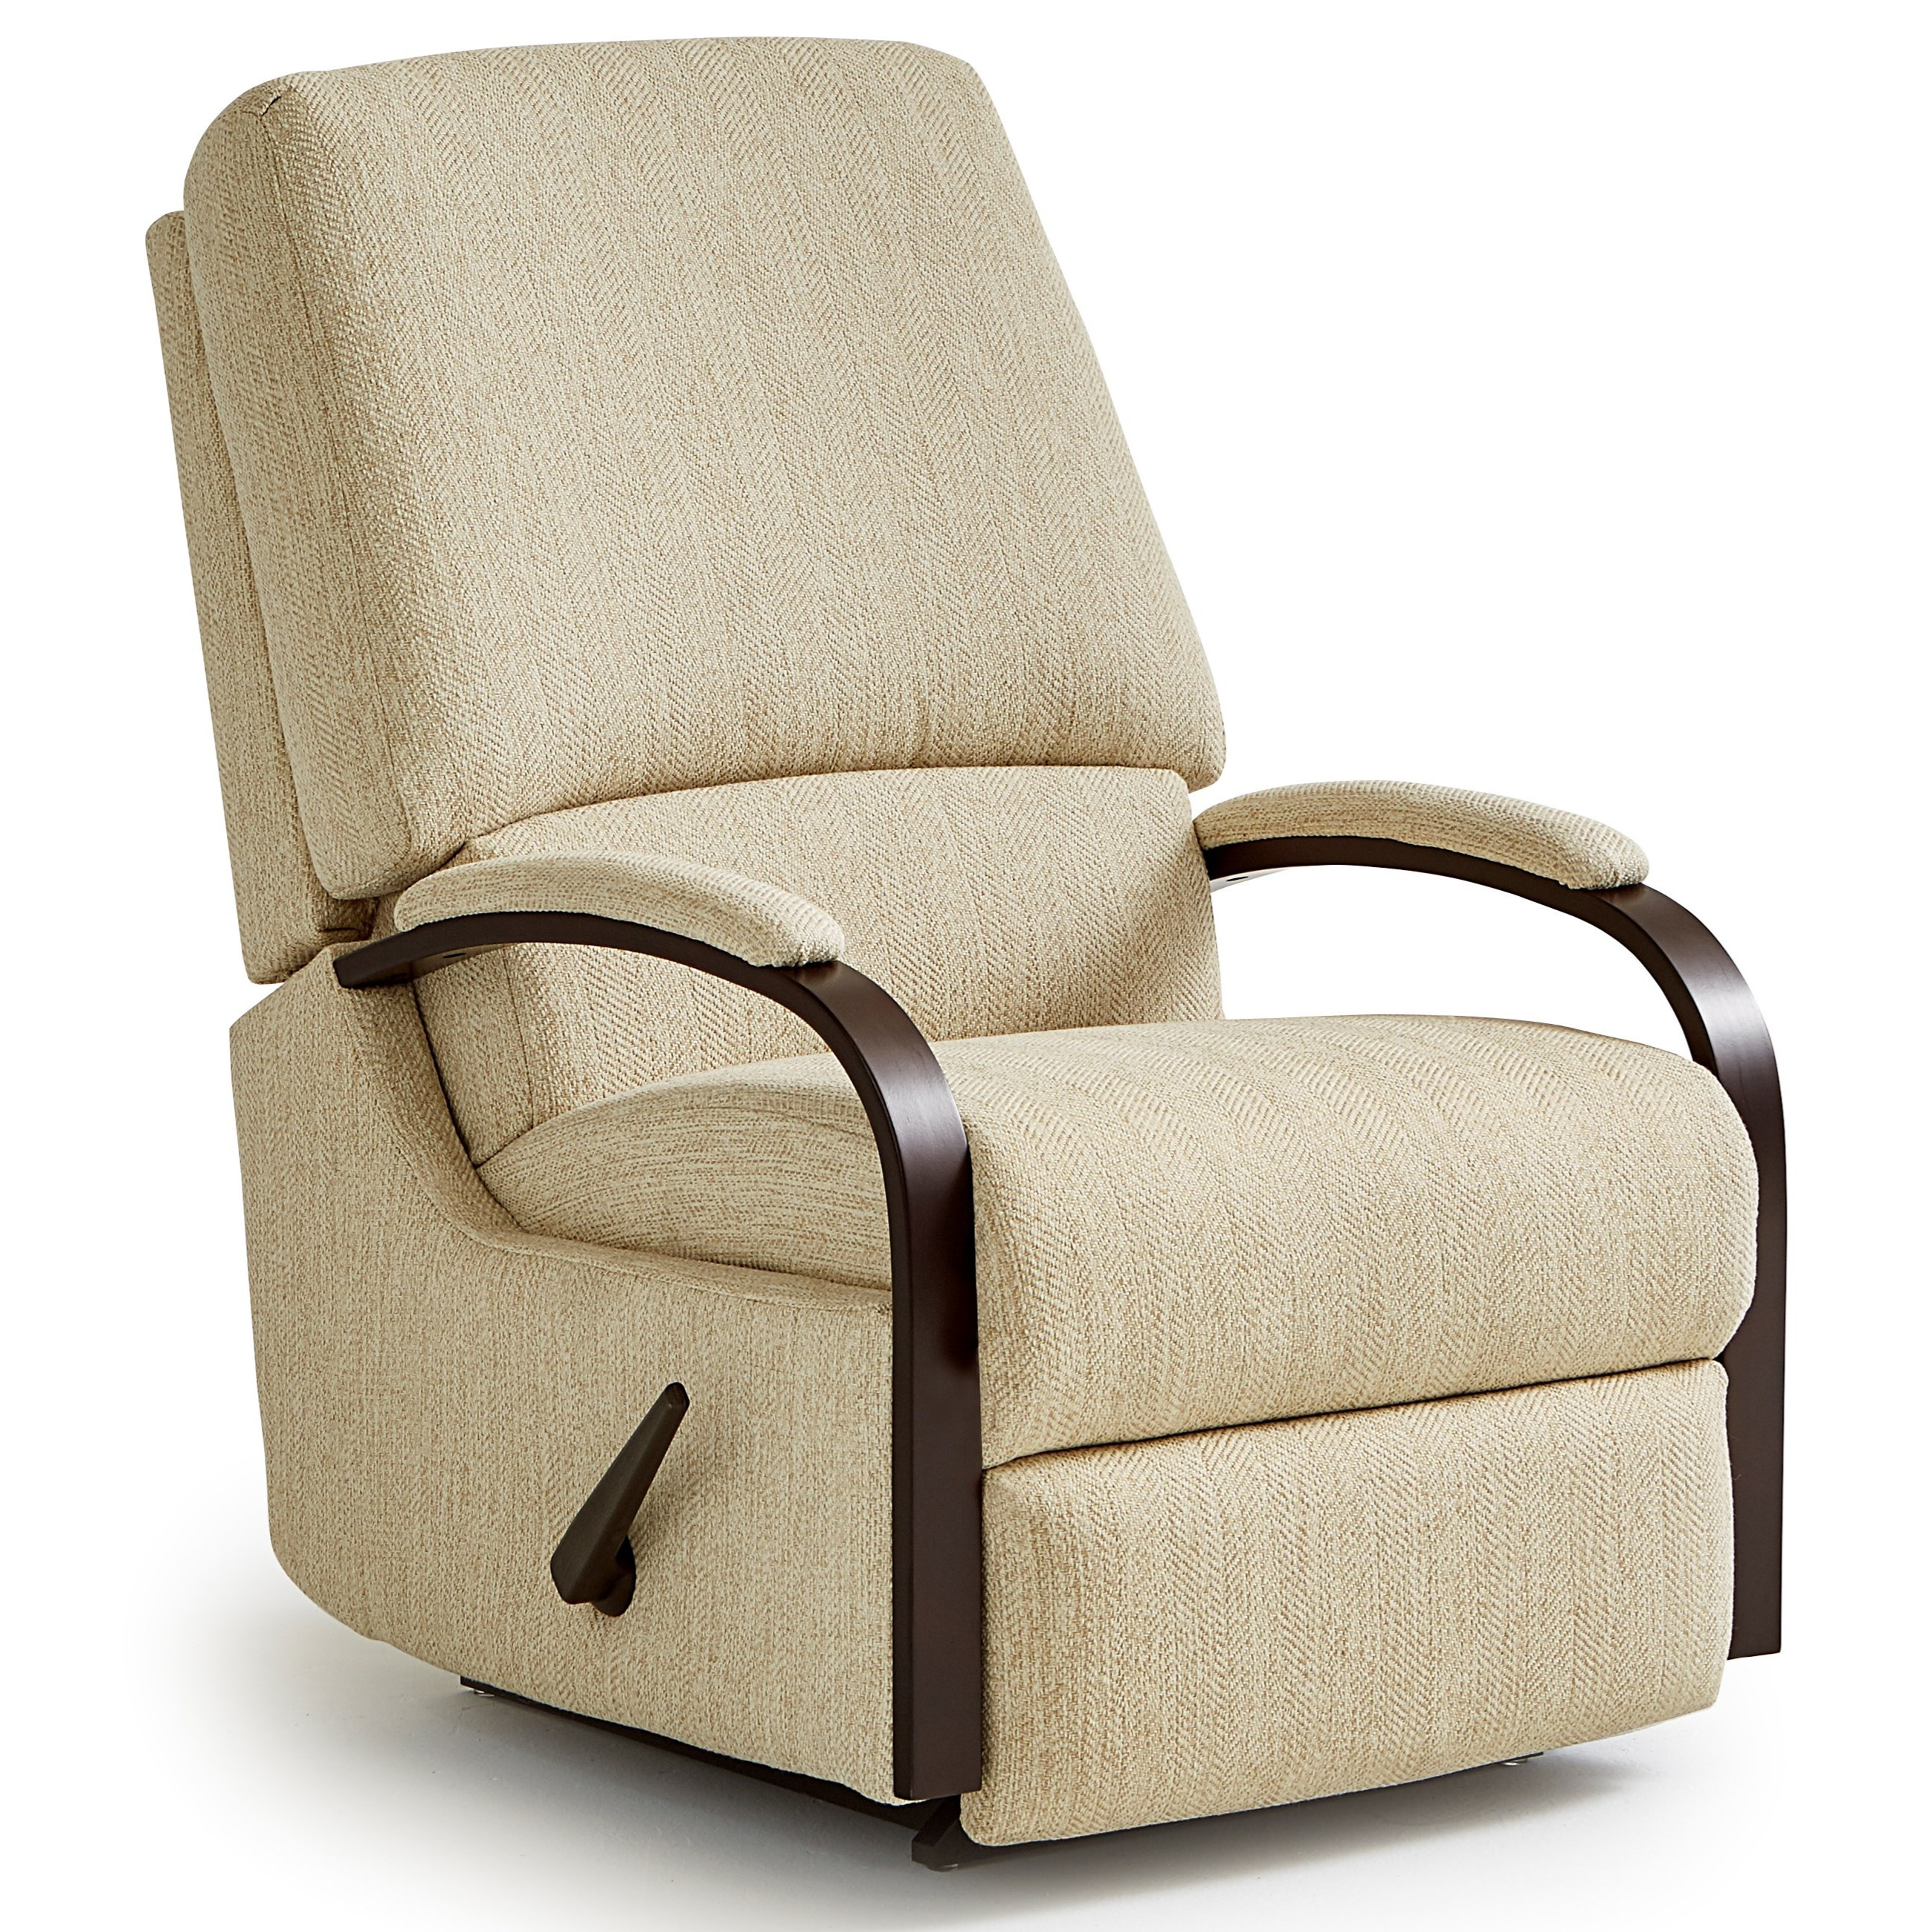 Swivel Rocking Chairs Pike Swivel Rocking Reclining Chair By Best Home